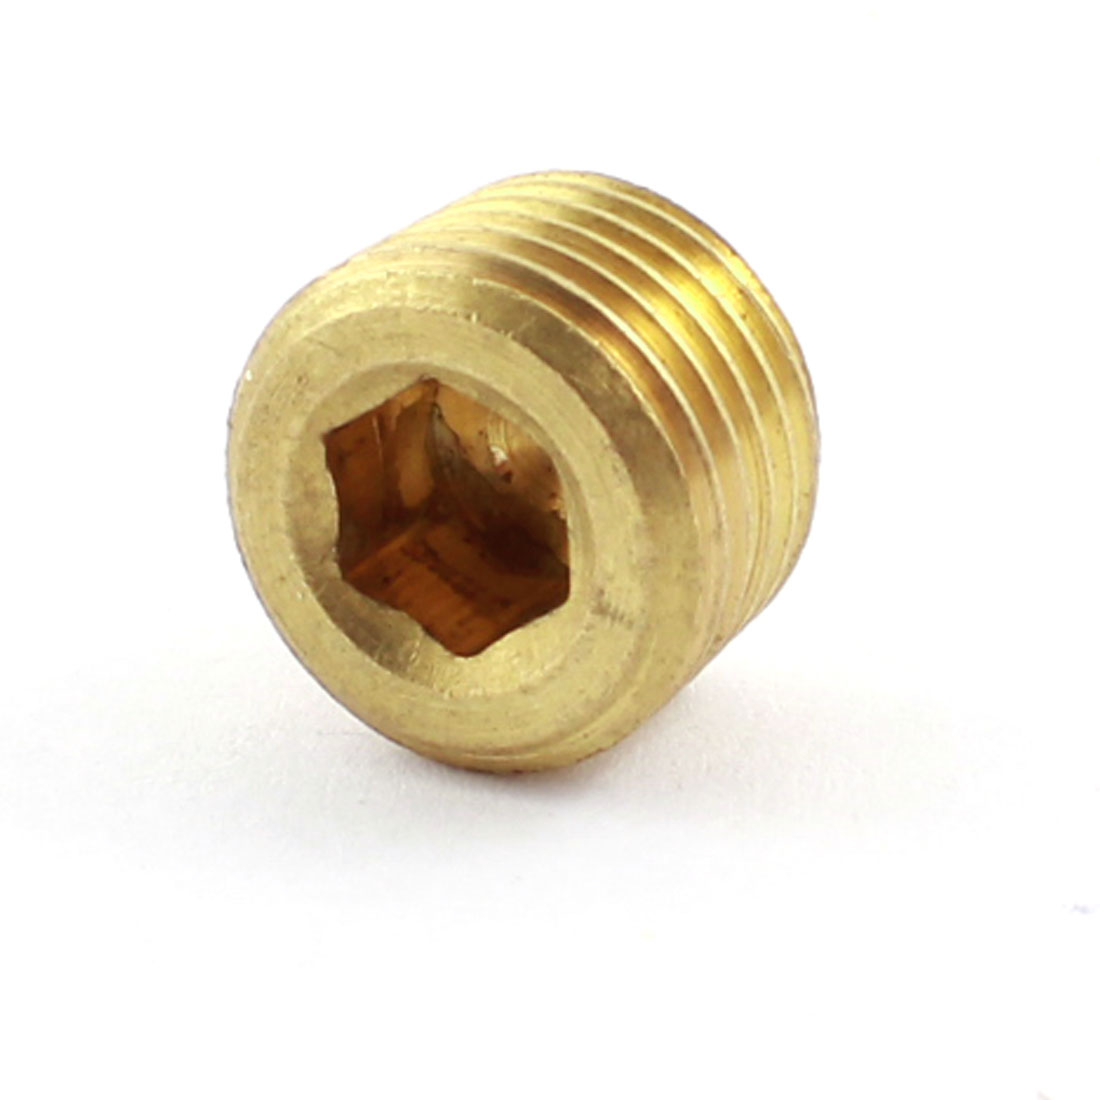 1/4PT Male Thread 9mm Height Brass Hex Head Pipe Plug Connector Fittings Coupler Coupling Adaper